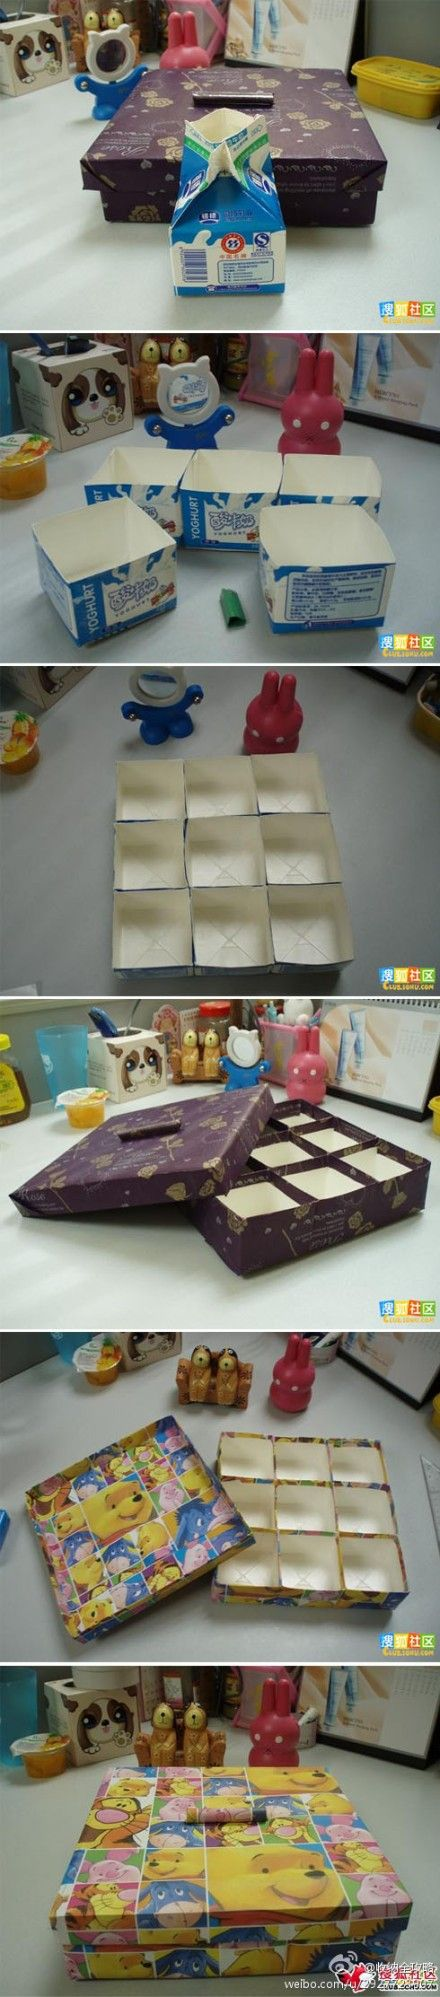 To be a waste storage box can use it - oh, nine yogurt boxes can be washed to learn it myself